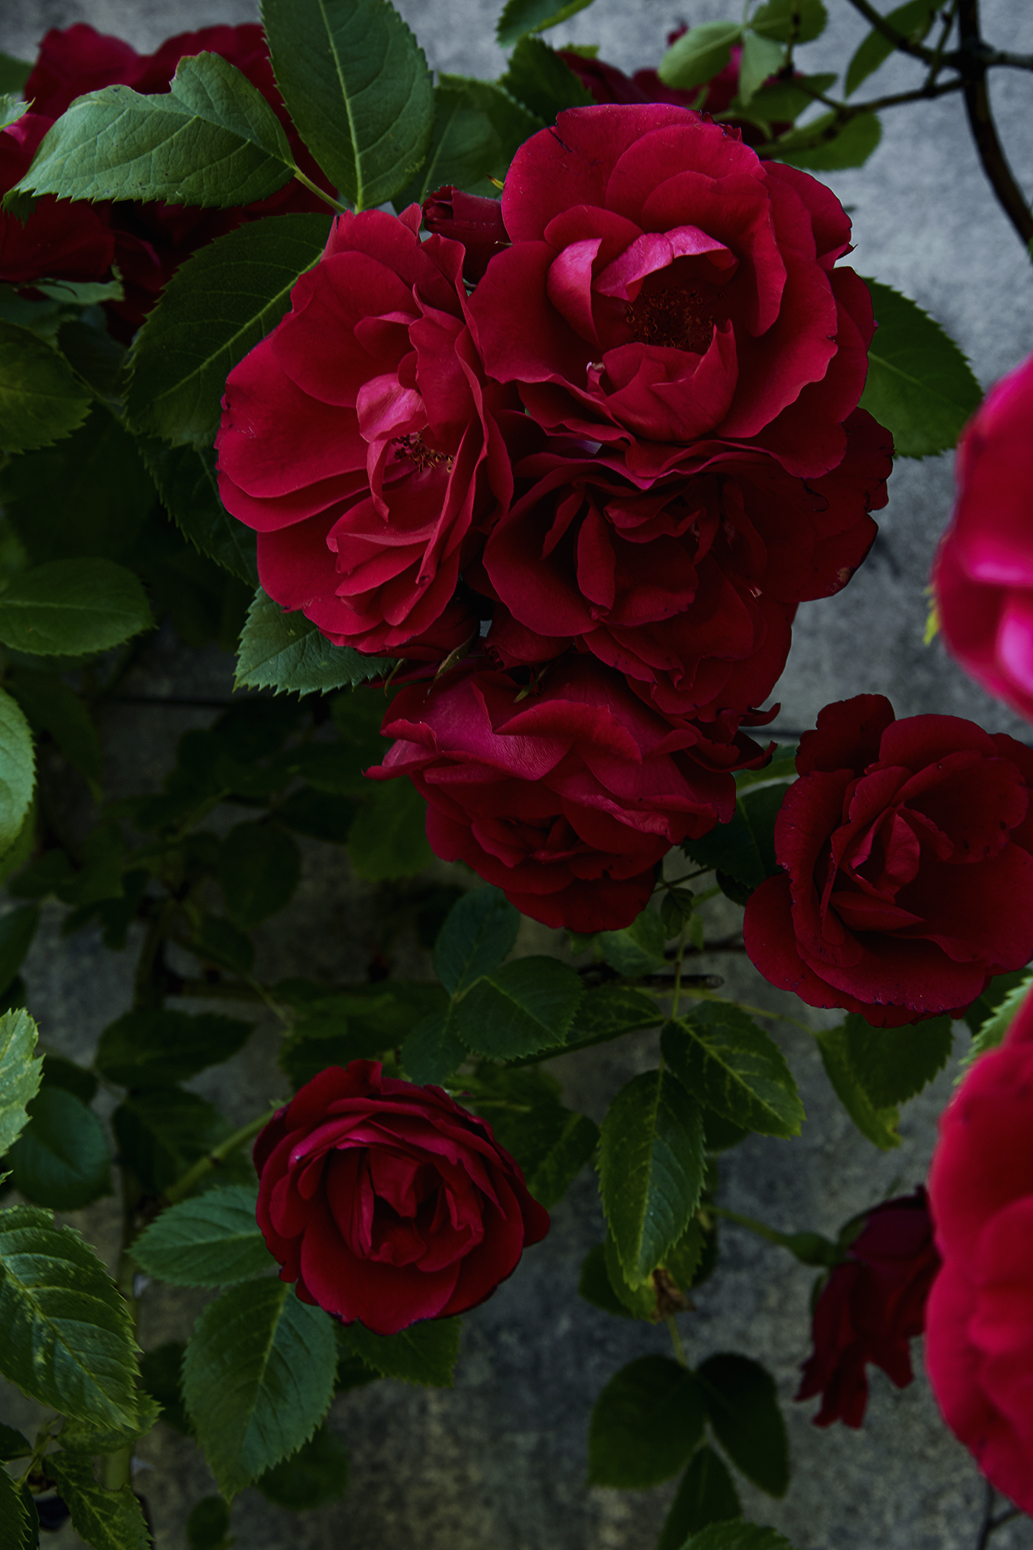 Red roses (Viarmes)